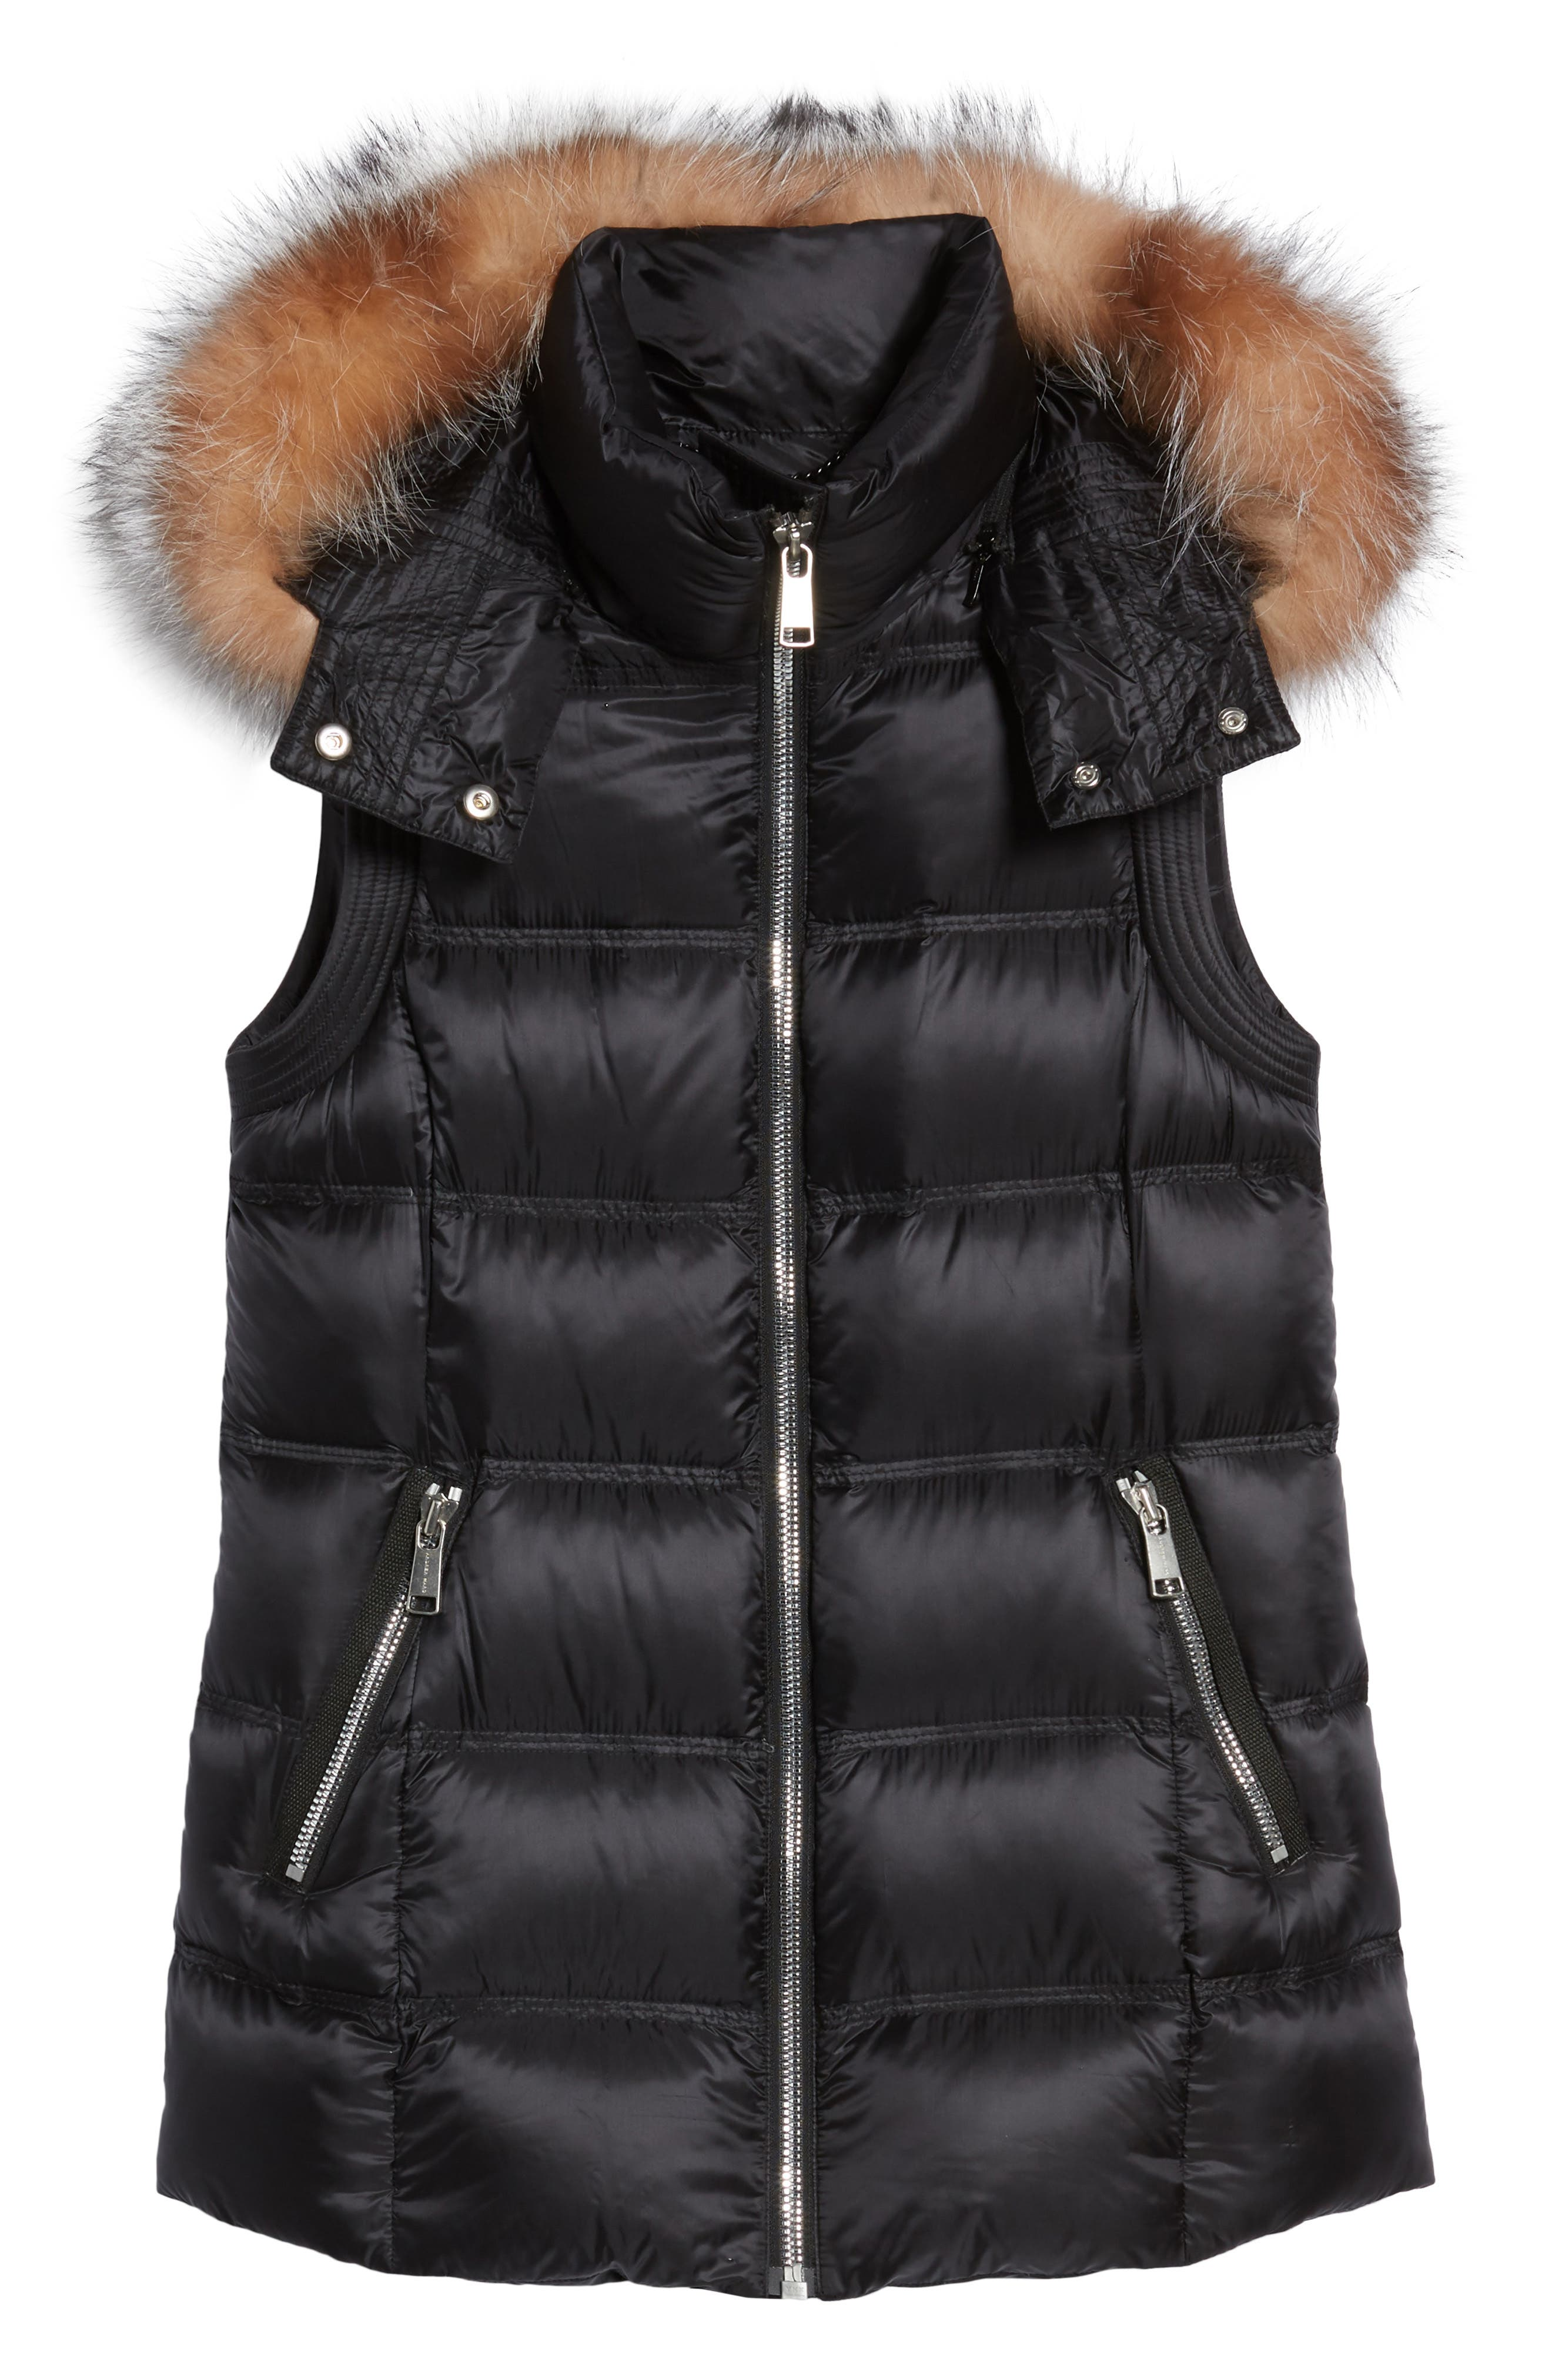 Claire 28 Water Resistant Hooded Down Vest with Genuine Fox Fur Trim,                             Alternate thumbnail 5, color,                             001